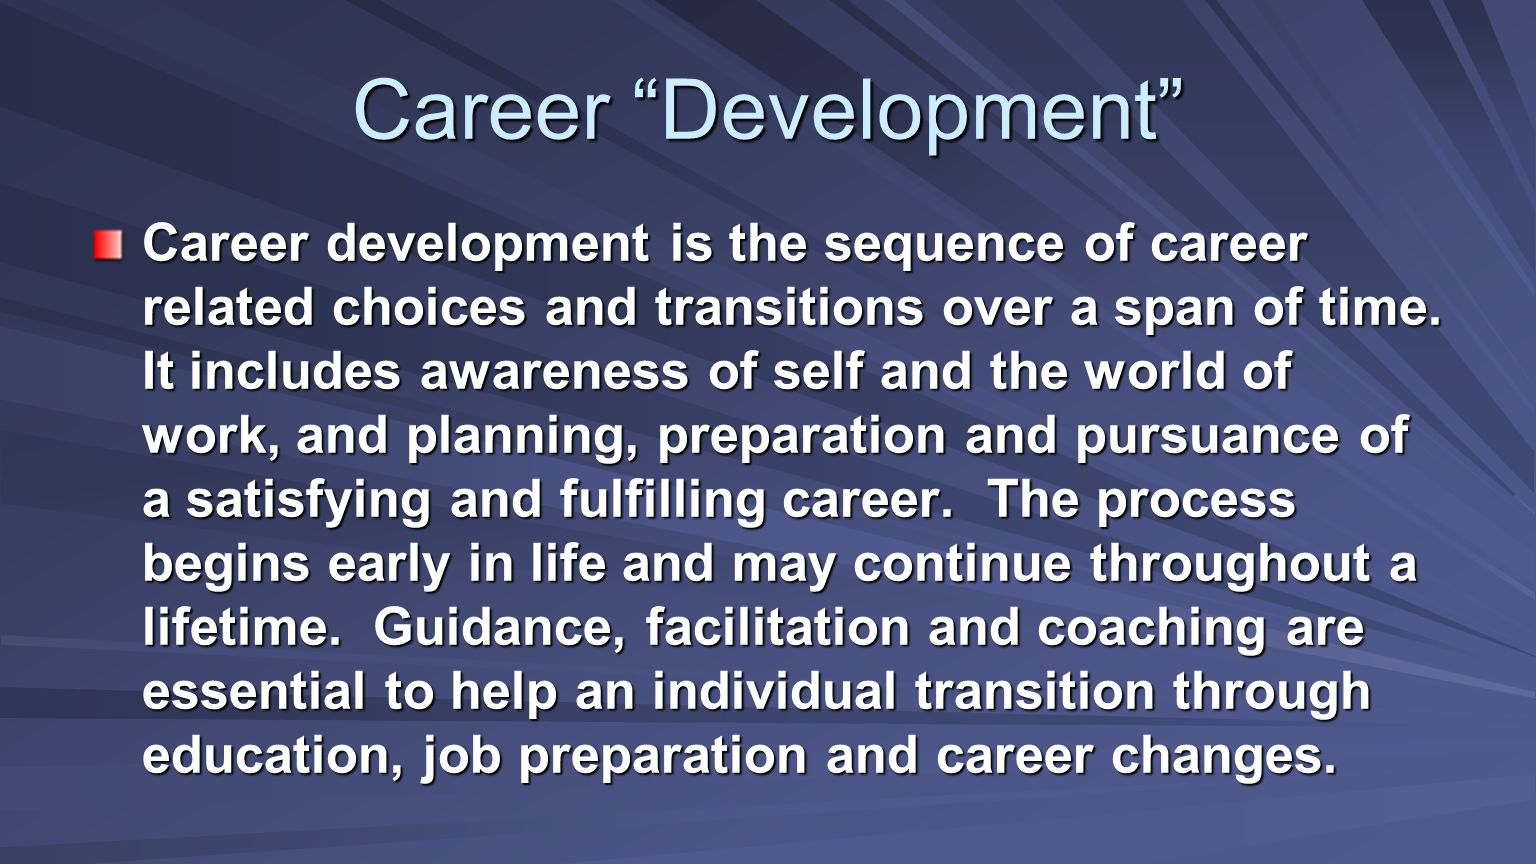 Career Development Career development is the sequence of career related choices and transitions over a span of time.